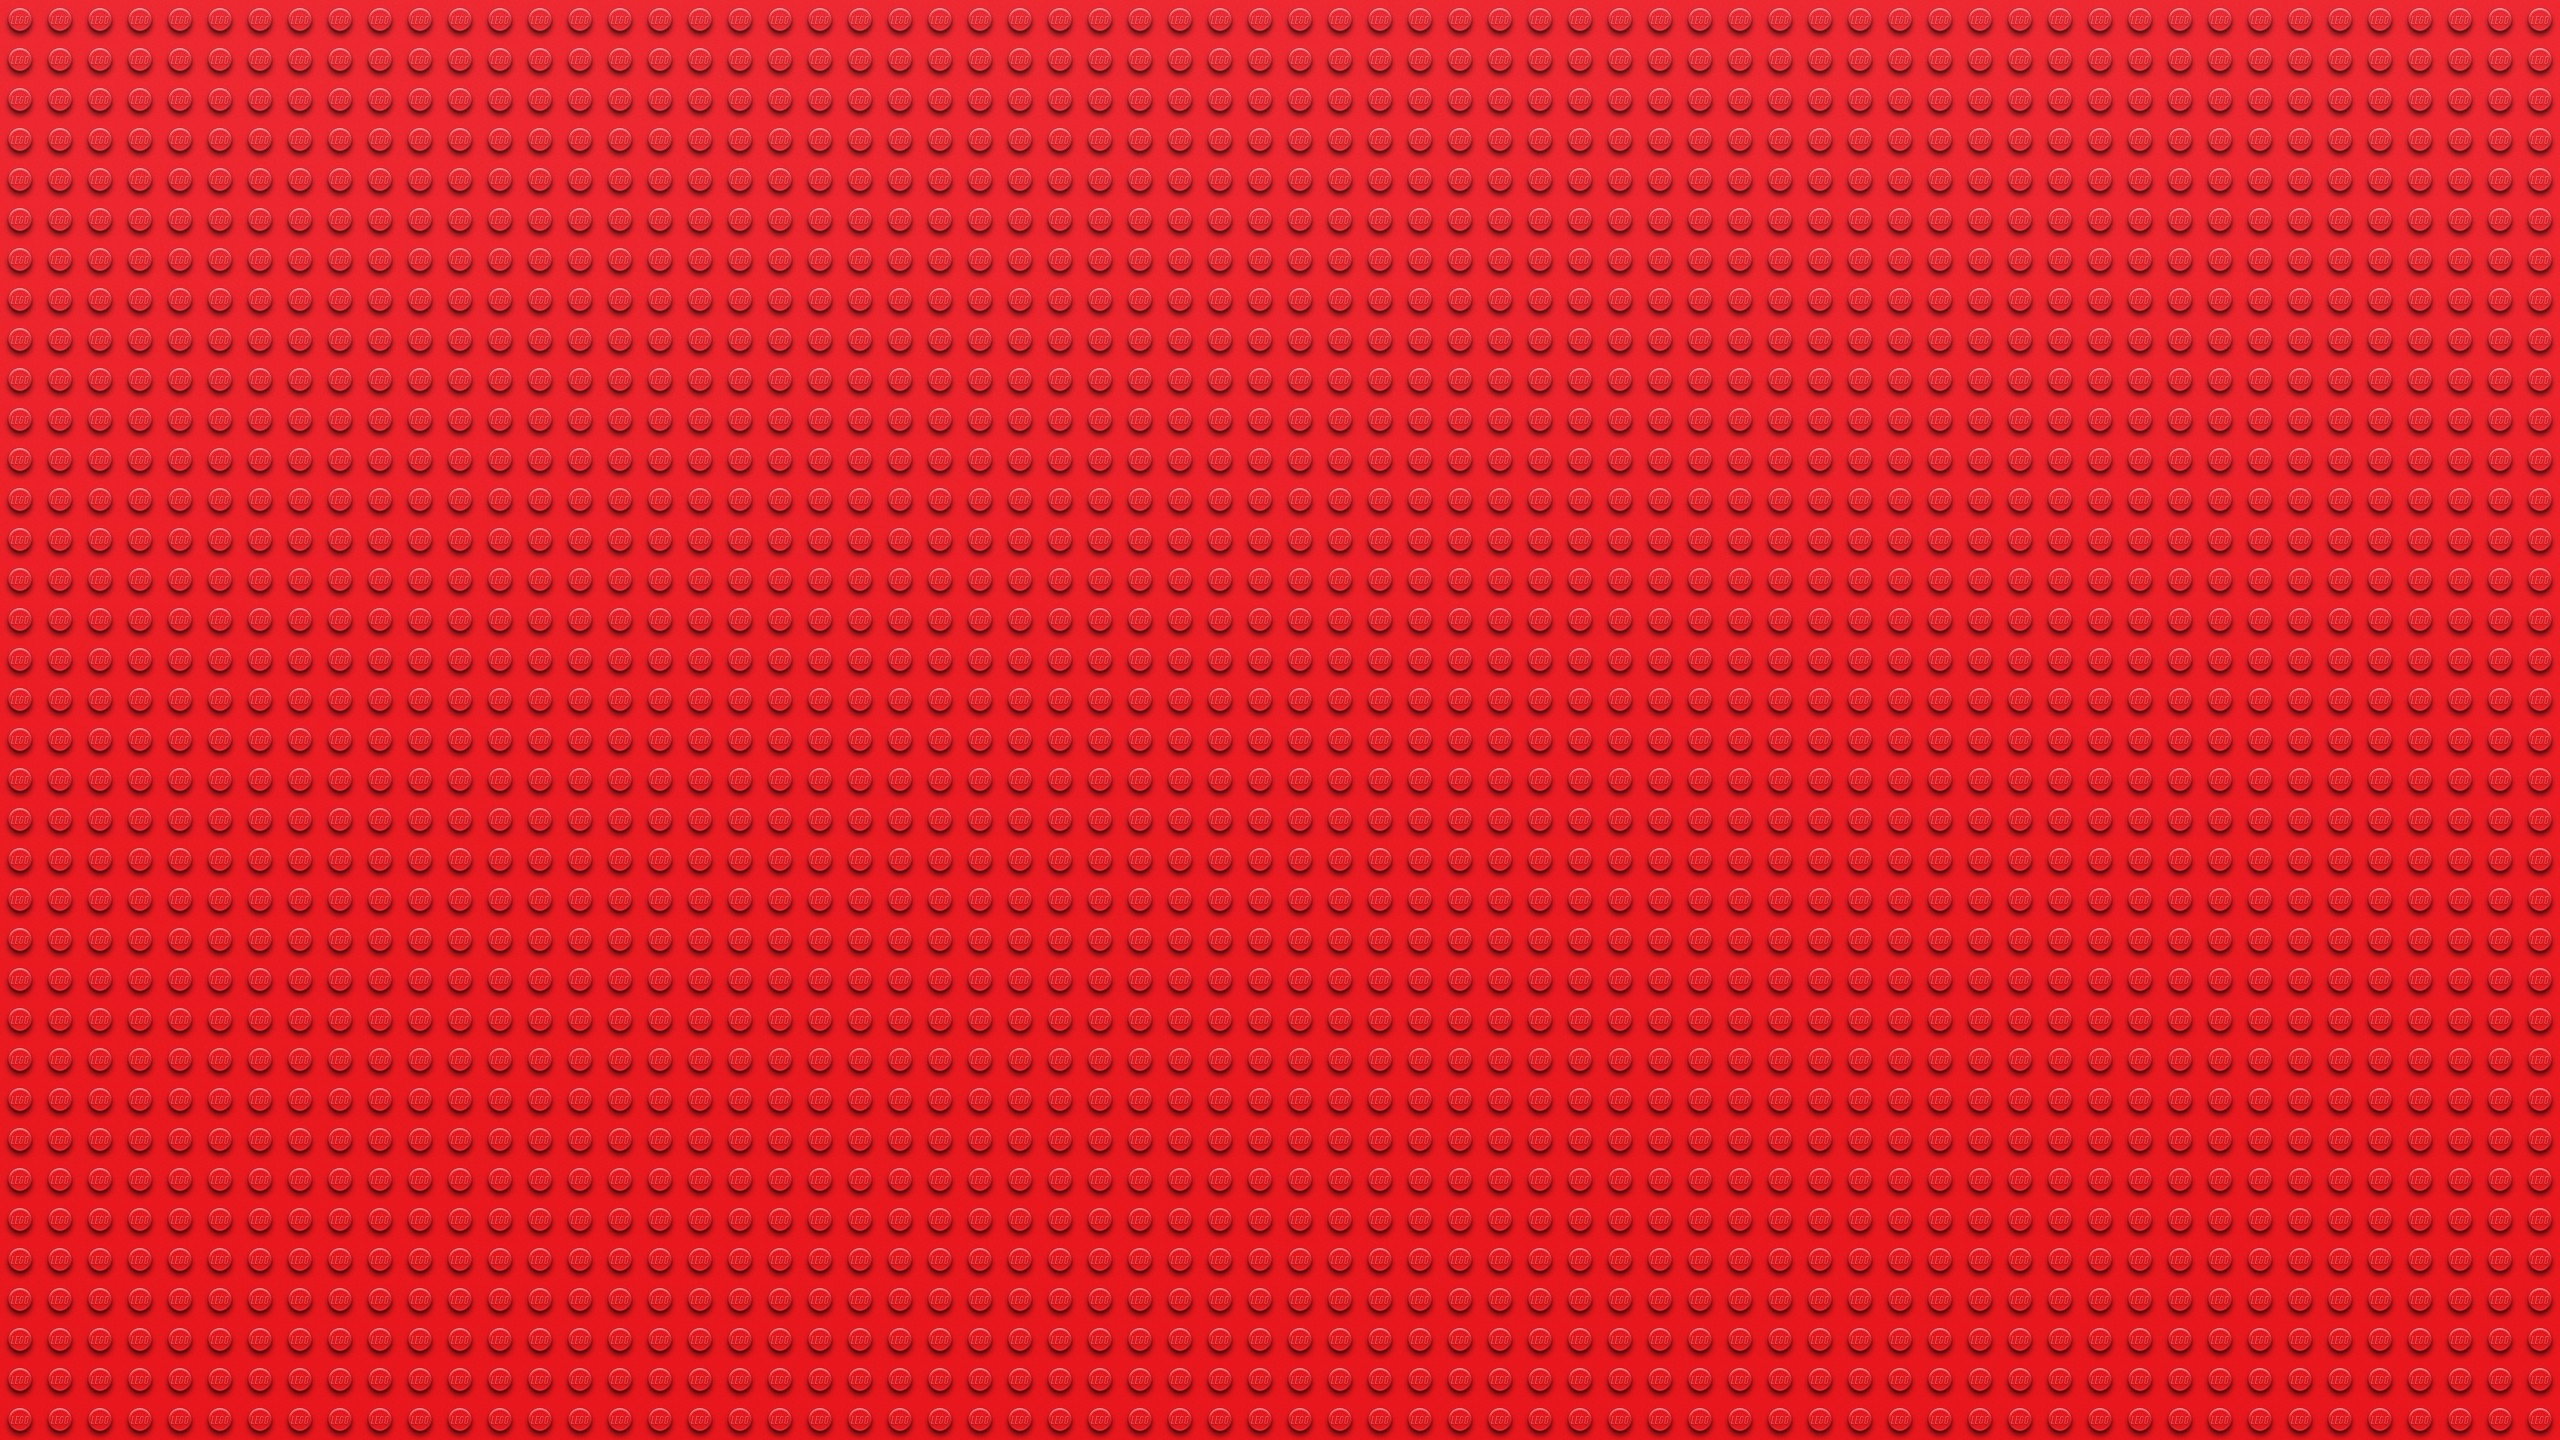 Download wallpaper 2560x1440 lego, points, circles, red.